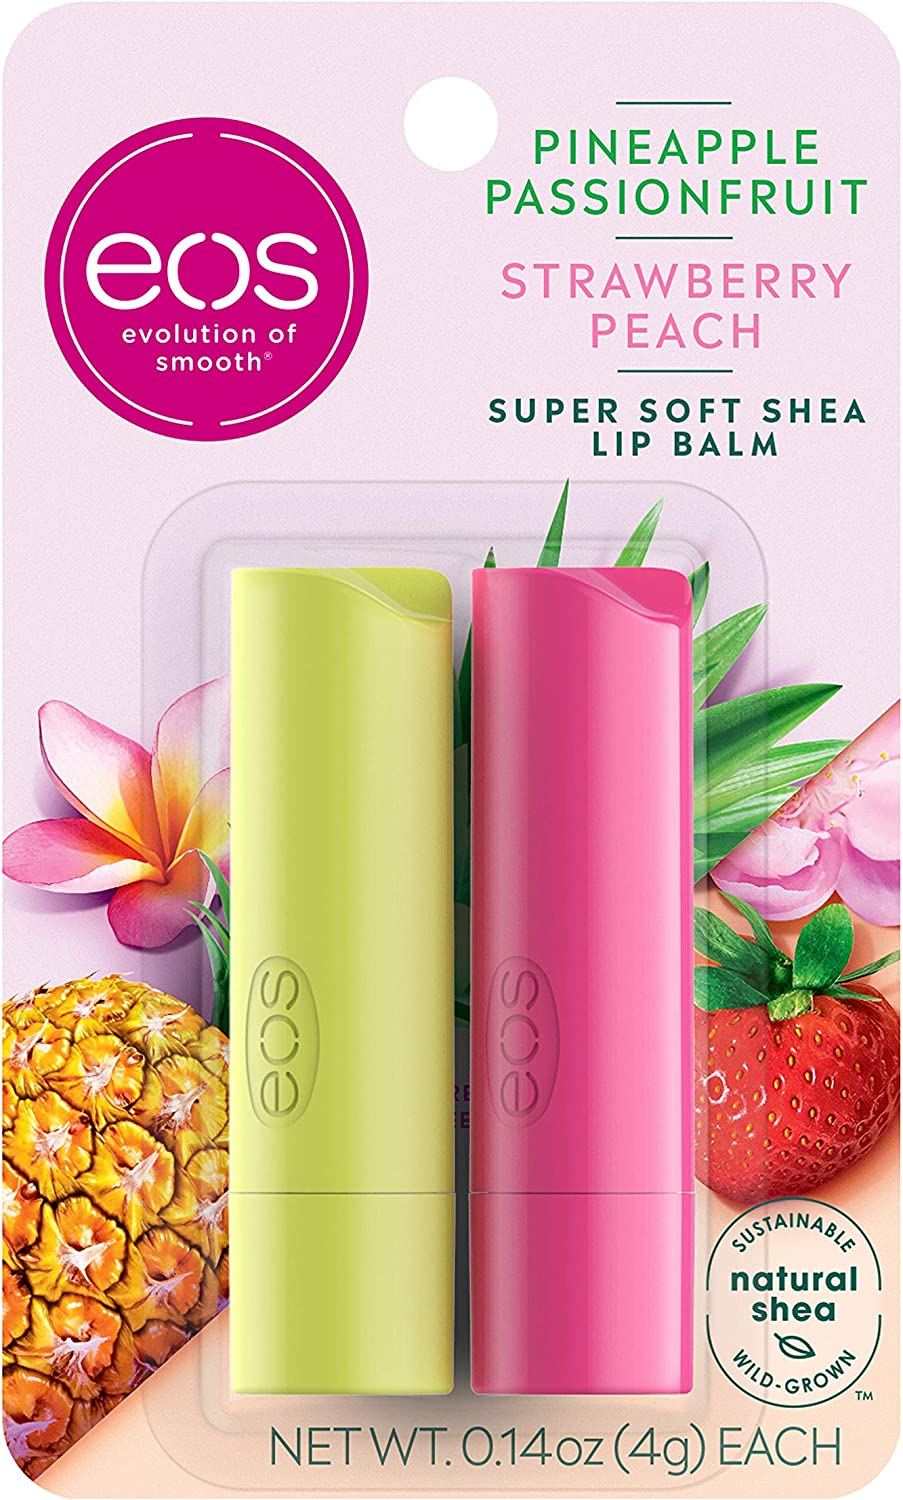 eos Super Soft Shea Stick Lip Balm - Strawberry Peach and Pineapple Passionfruit | Deeply Hydrates and Seals in Moisture | Sustainably-Sourced Ingredients | 0.14 oz | 2-Pack